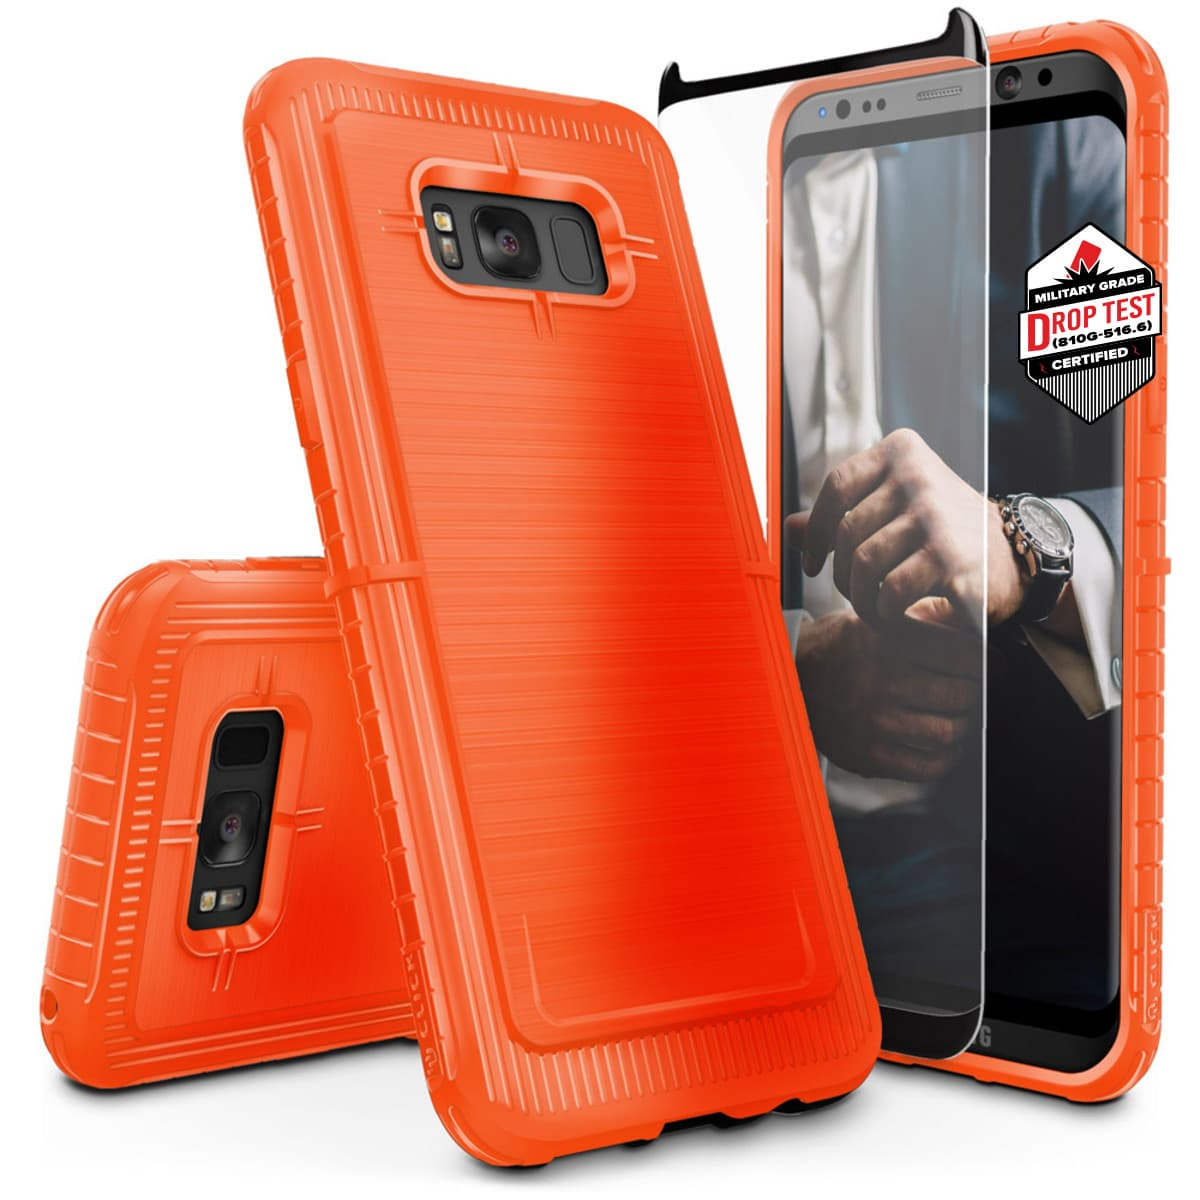 ORANGE GALAXY S8 DYNITE SERIES